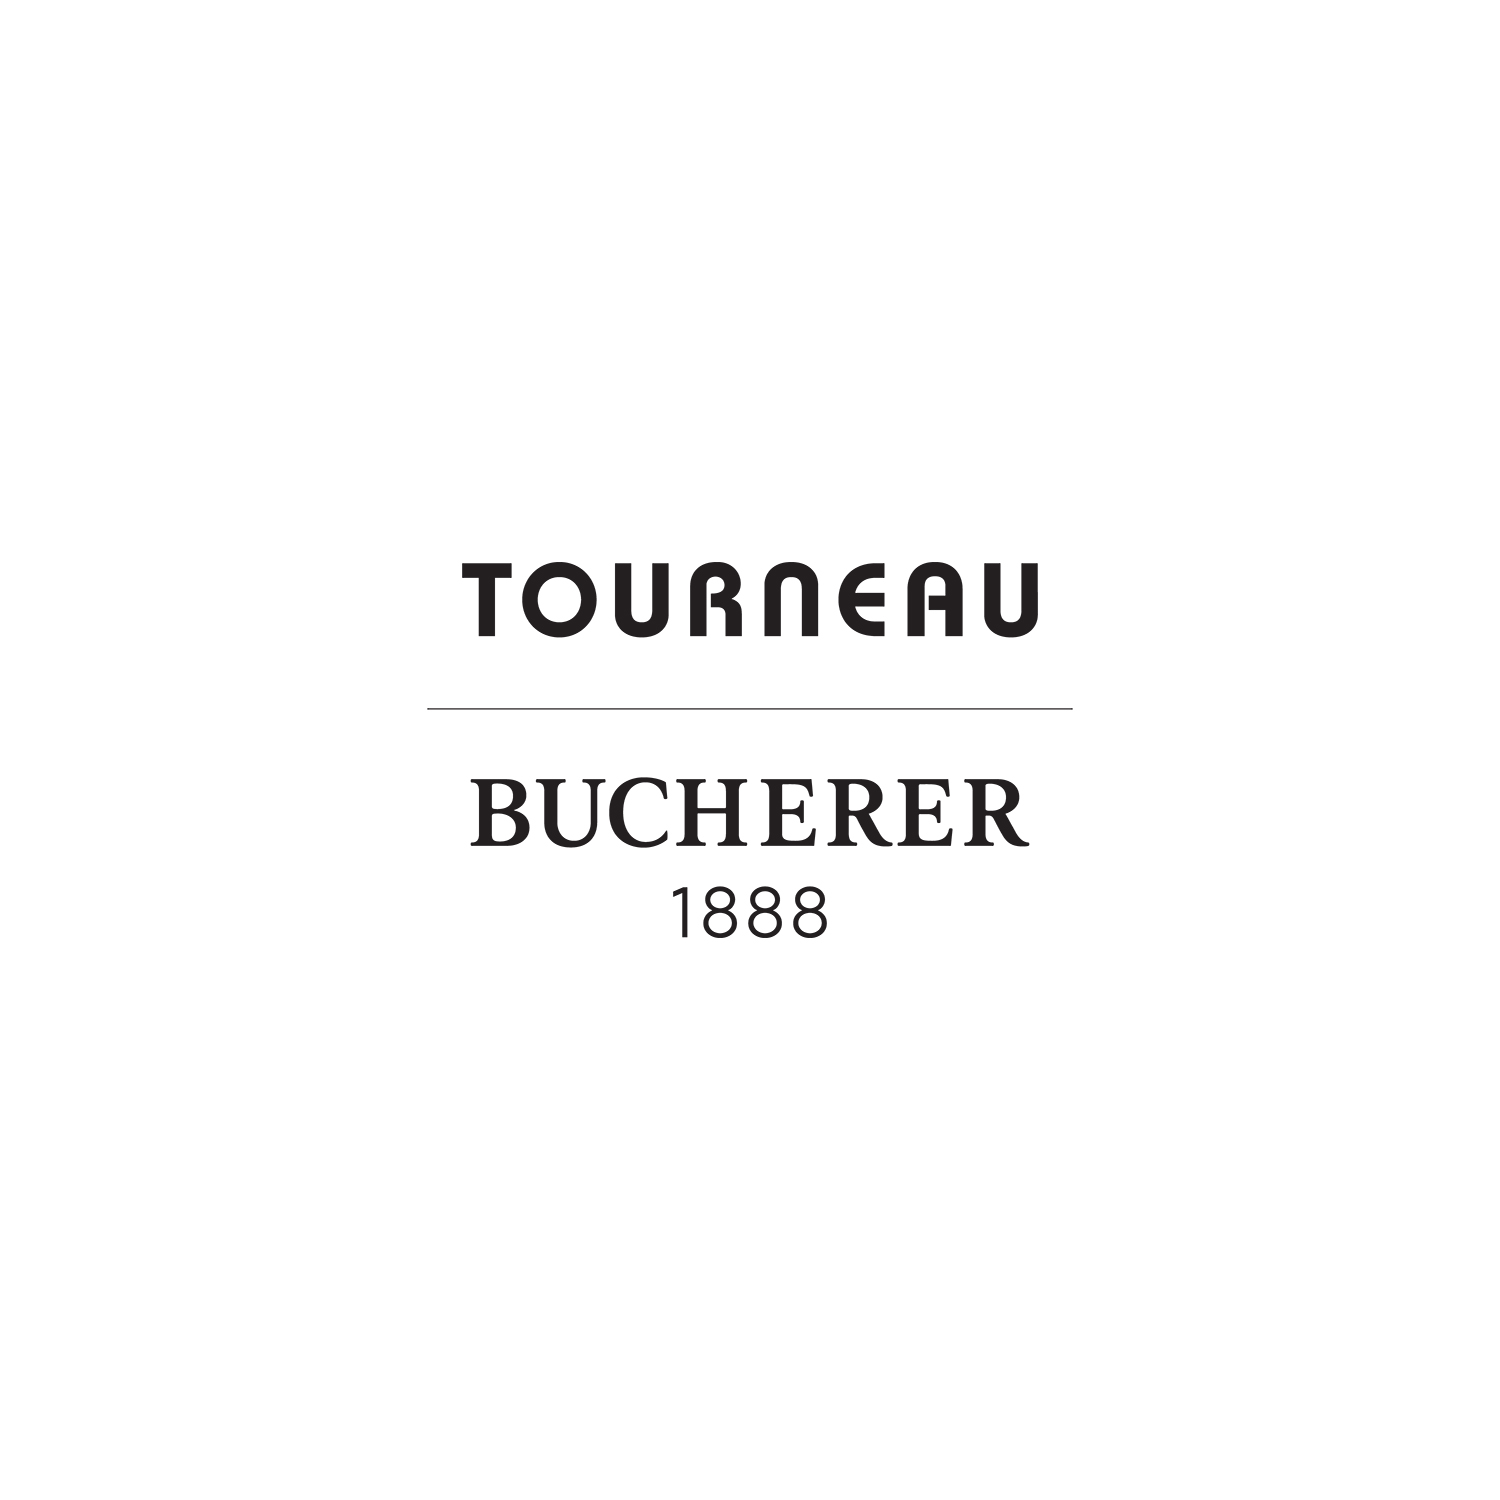 """Tourneau's new hybrid """"Tourneau Bucherer"""" logo, which will transition to Bucherer only after one year."""